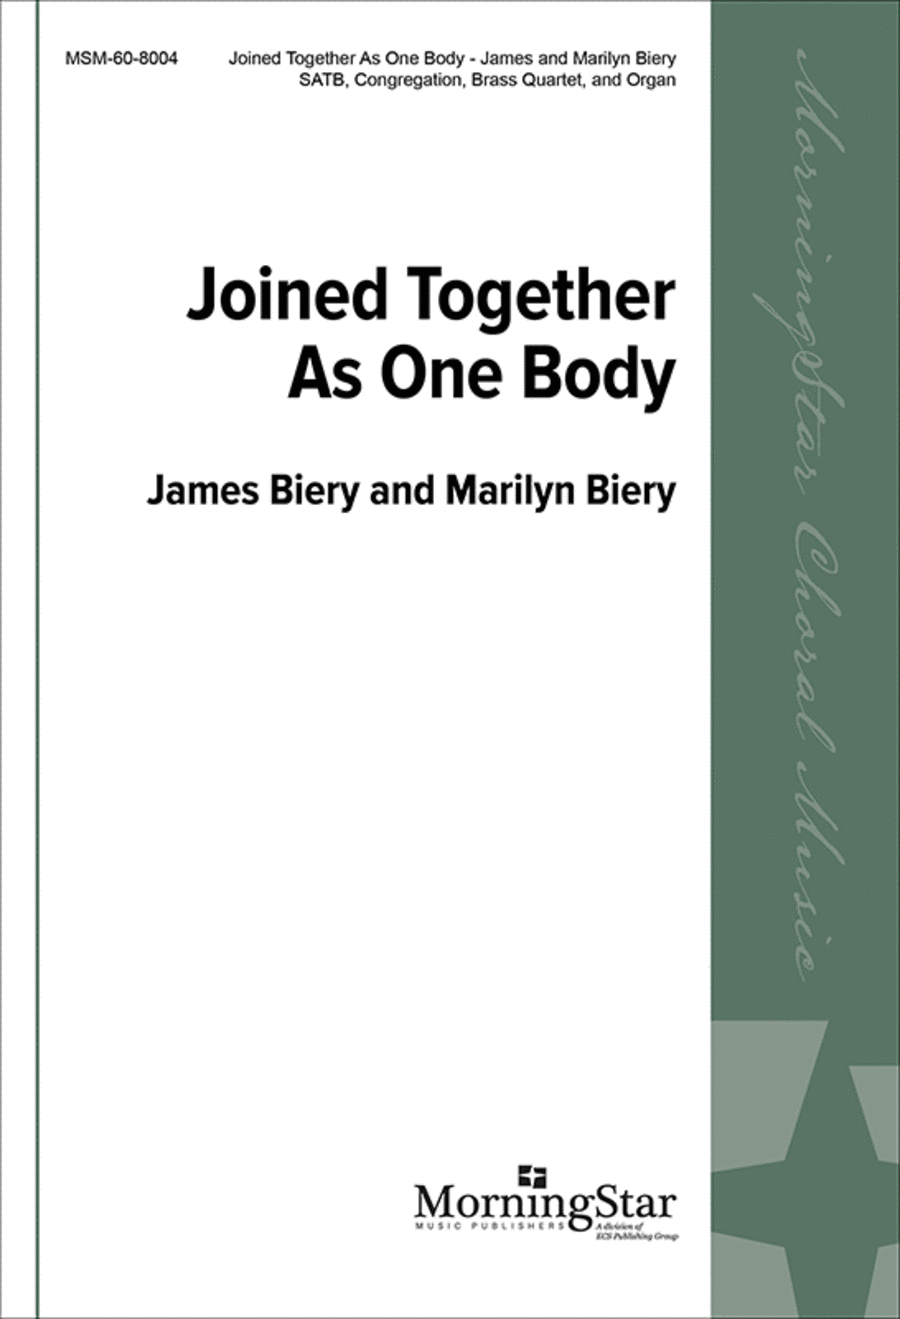 Joined Together As One Body (Choral Score)